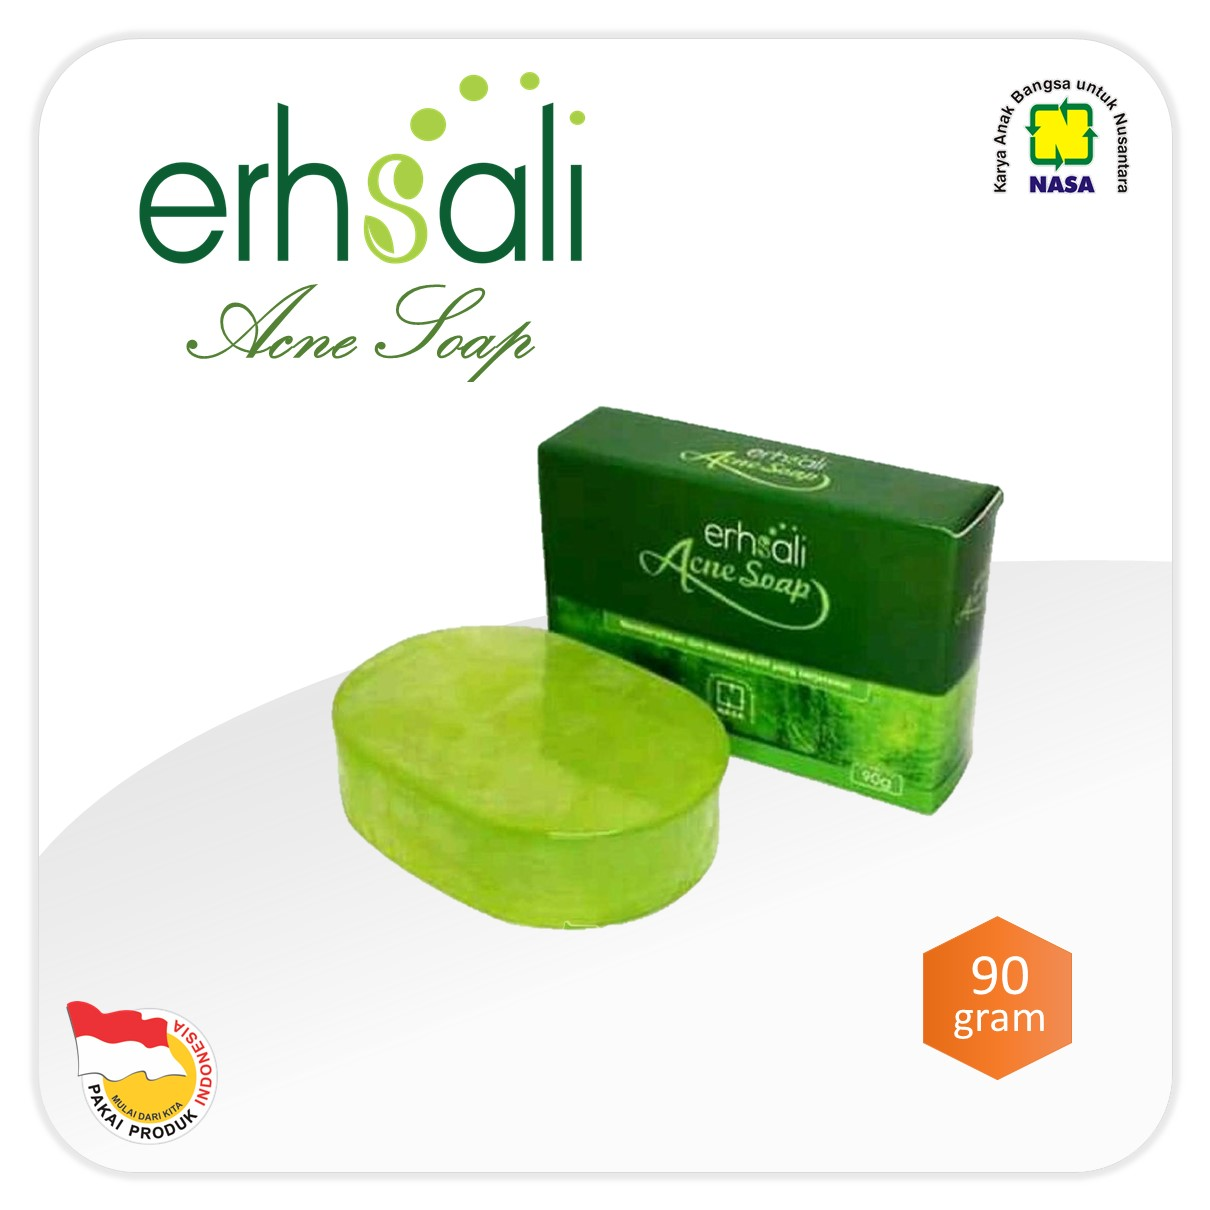 ERHSALI Anti Acne Facial Soap NASA